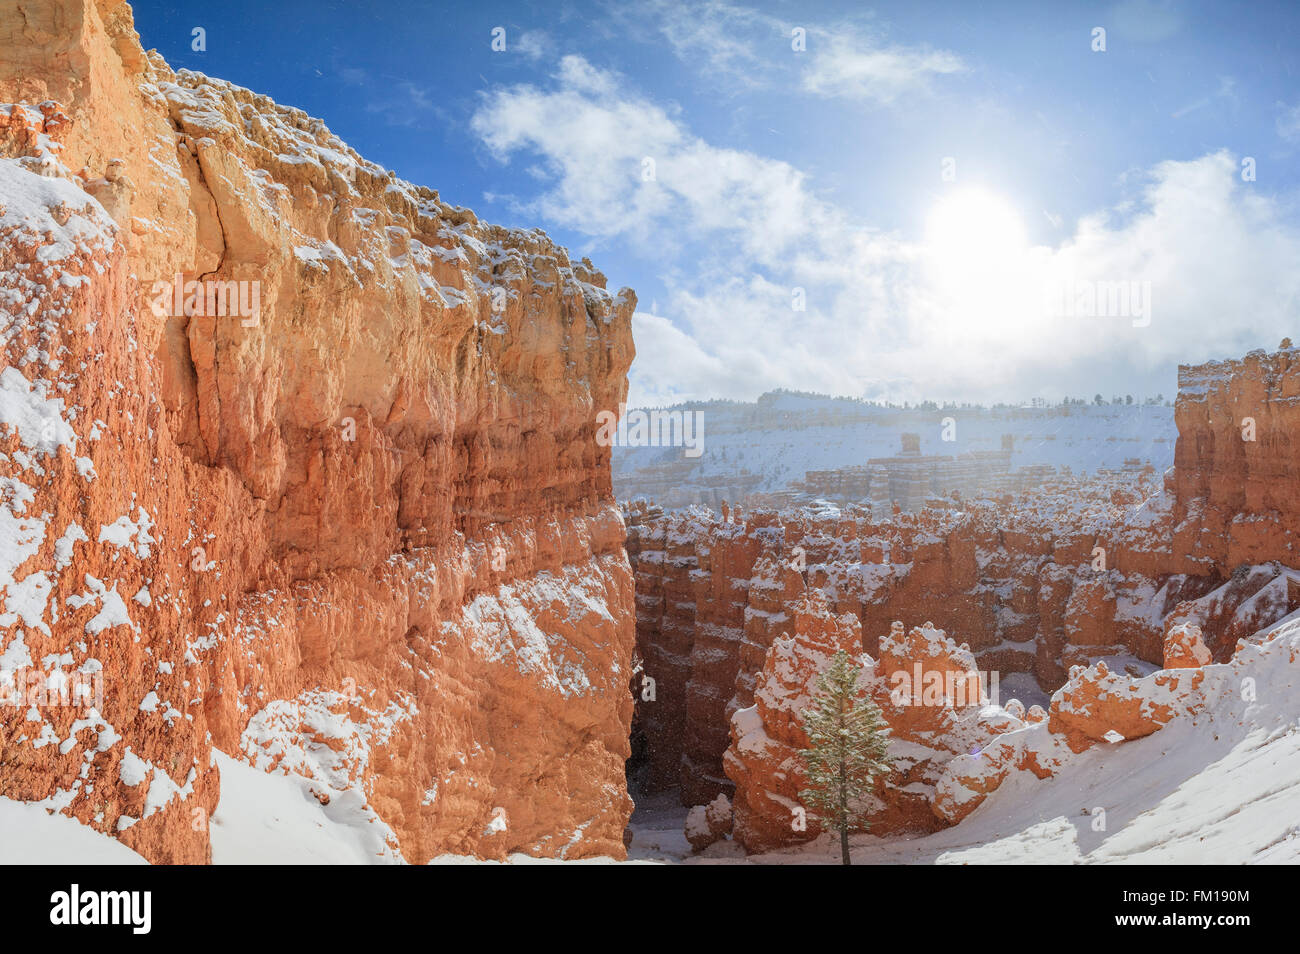 Superb view of Sunset Point of Bryce Canyon National Park at Utah - Stock Image